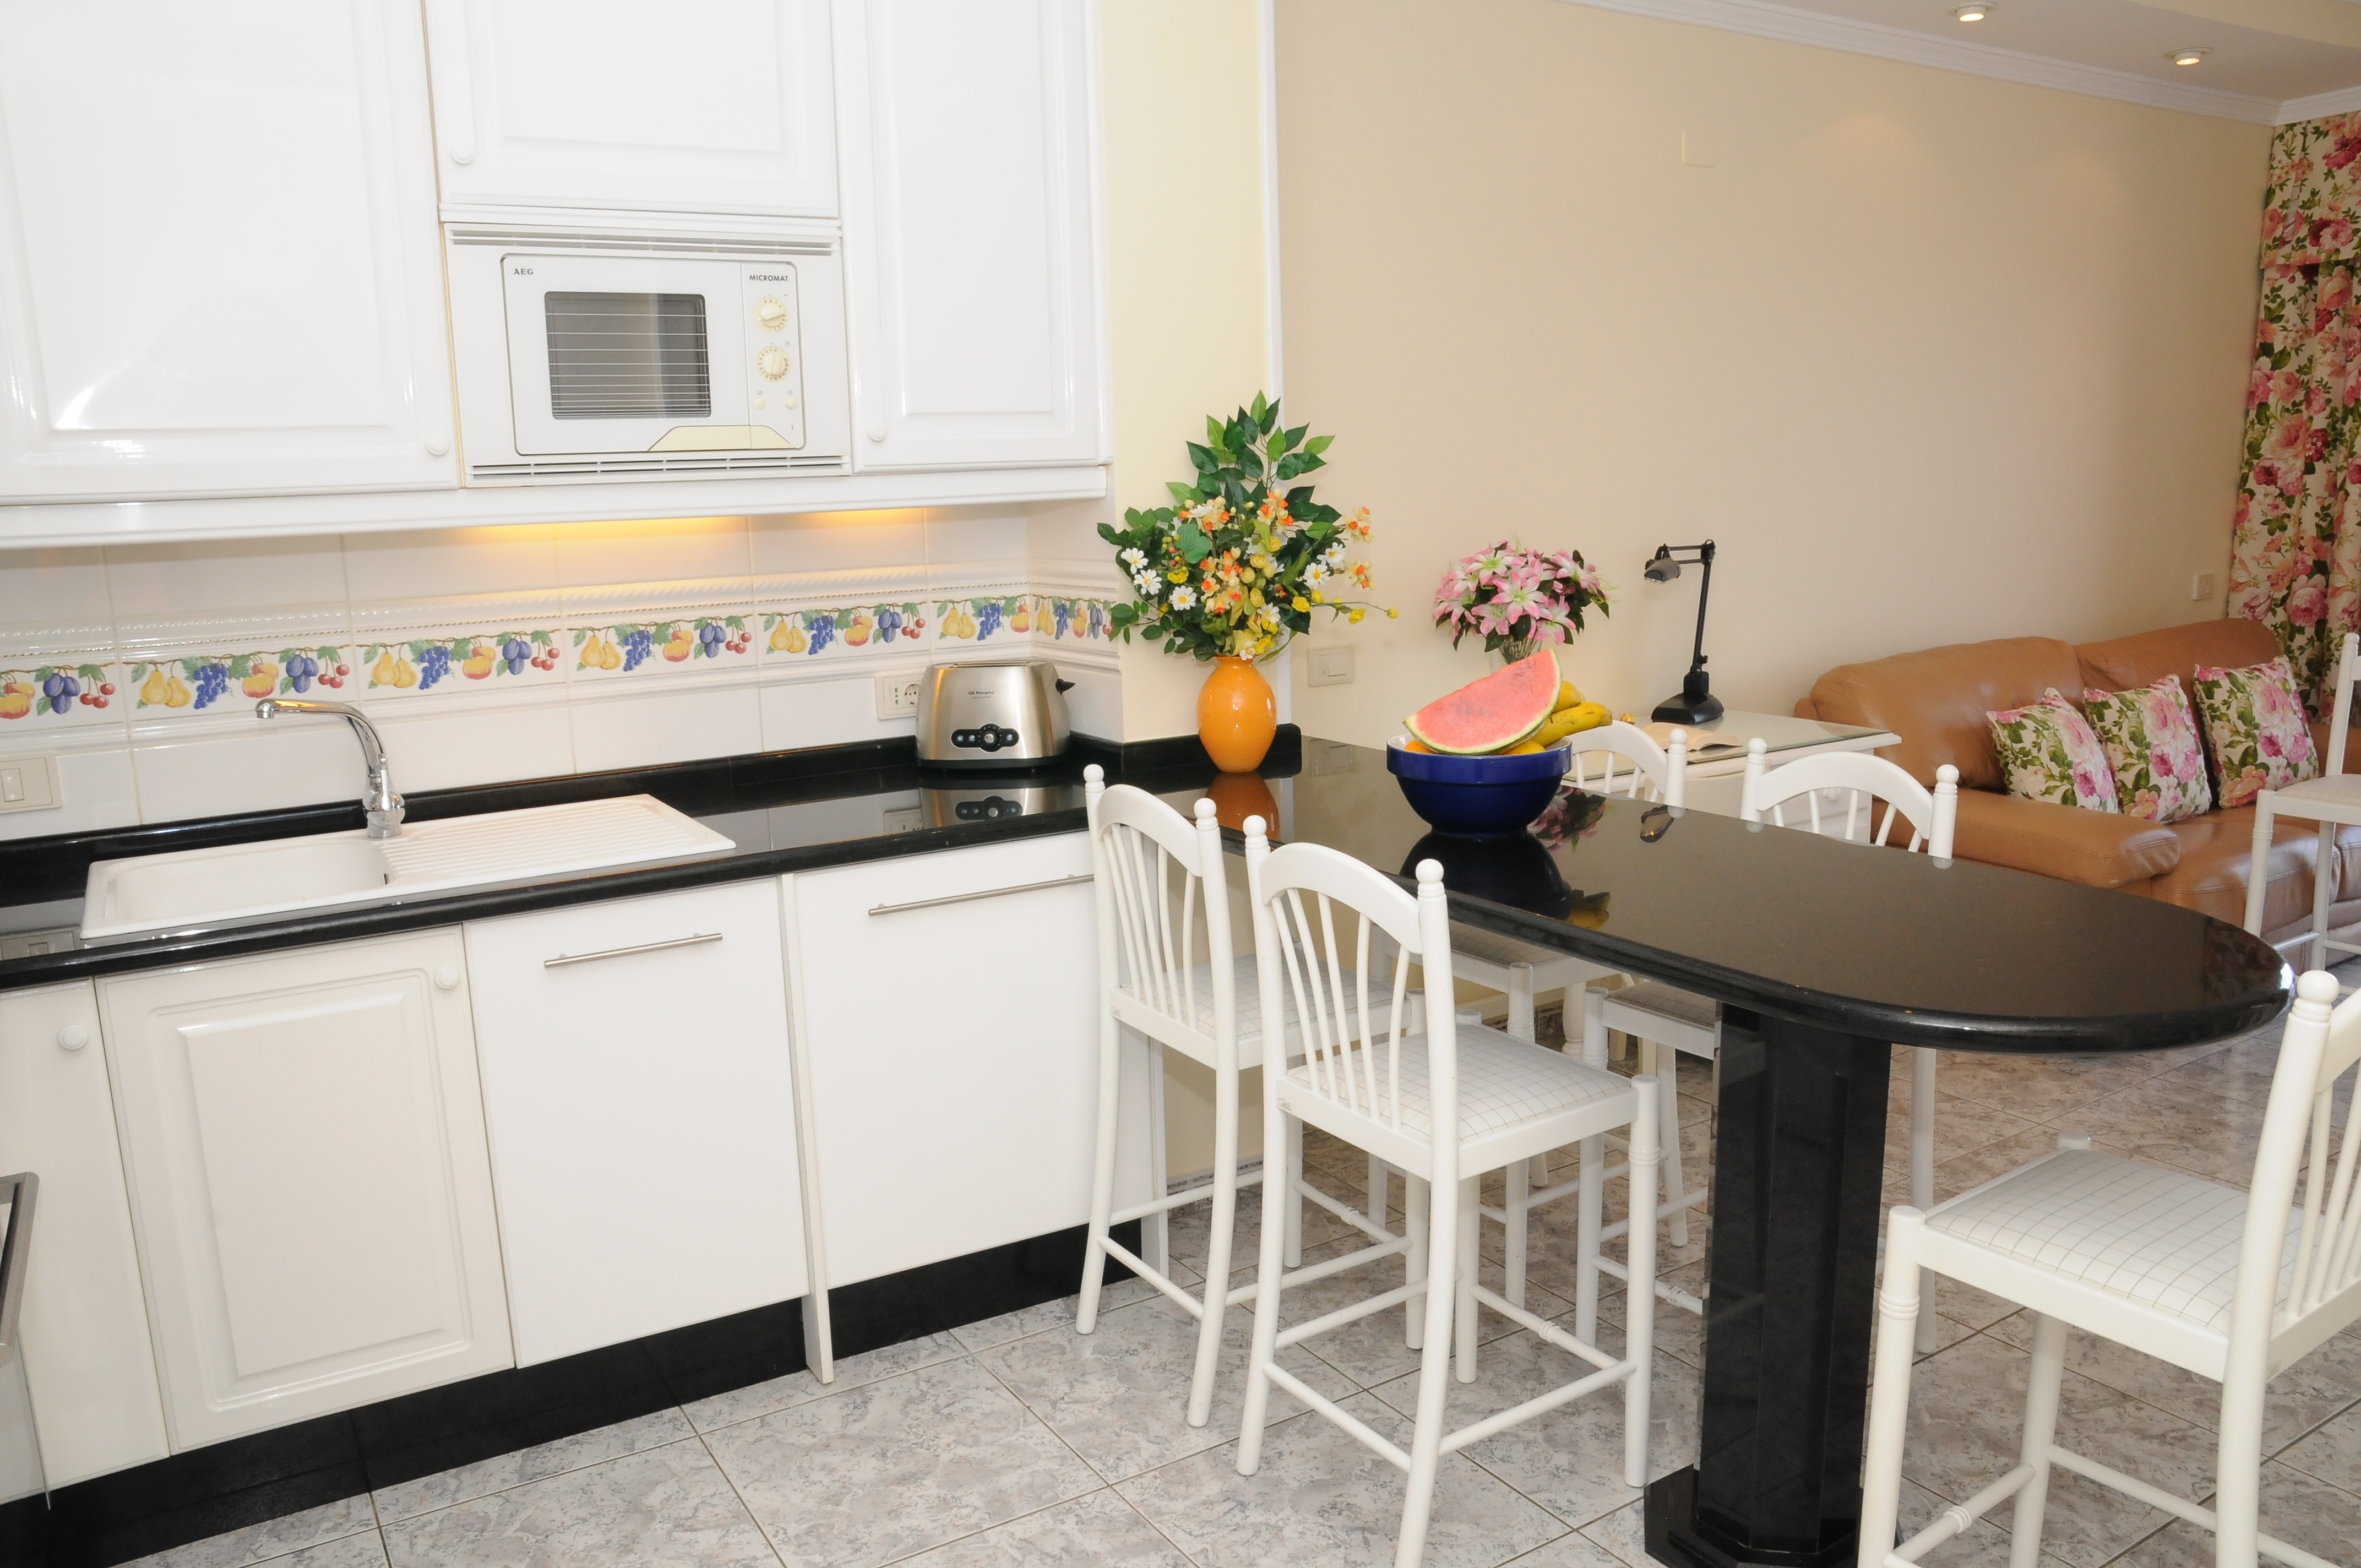 Kitchen and table for 6 people